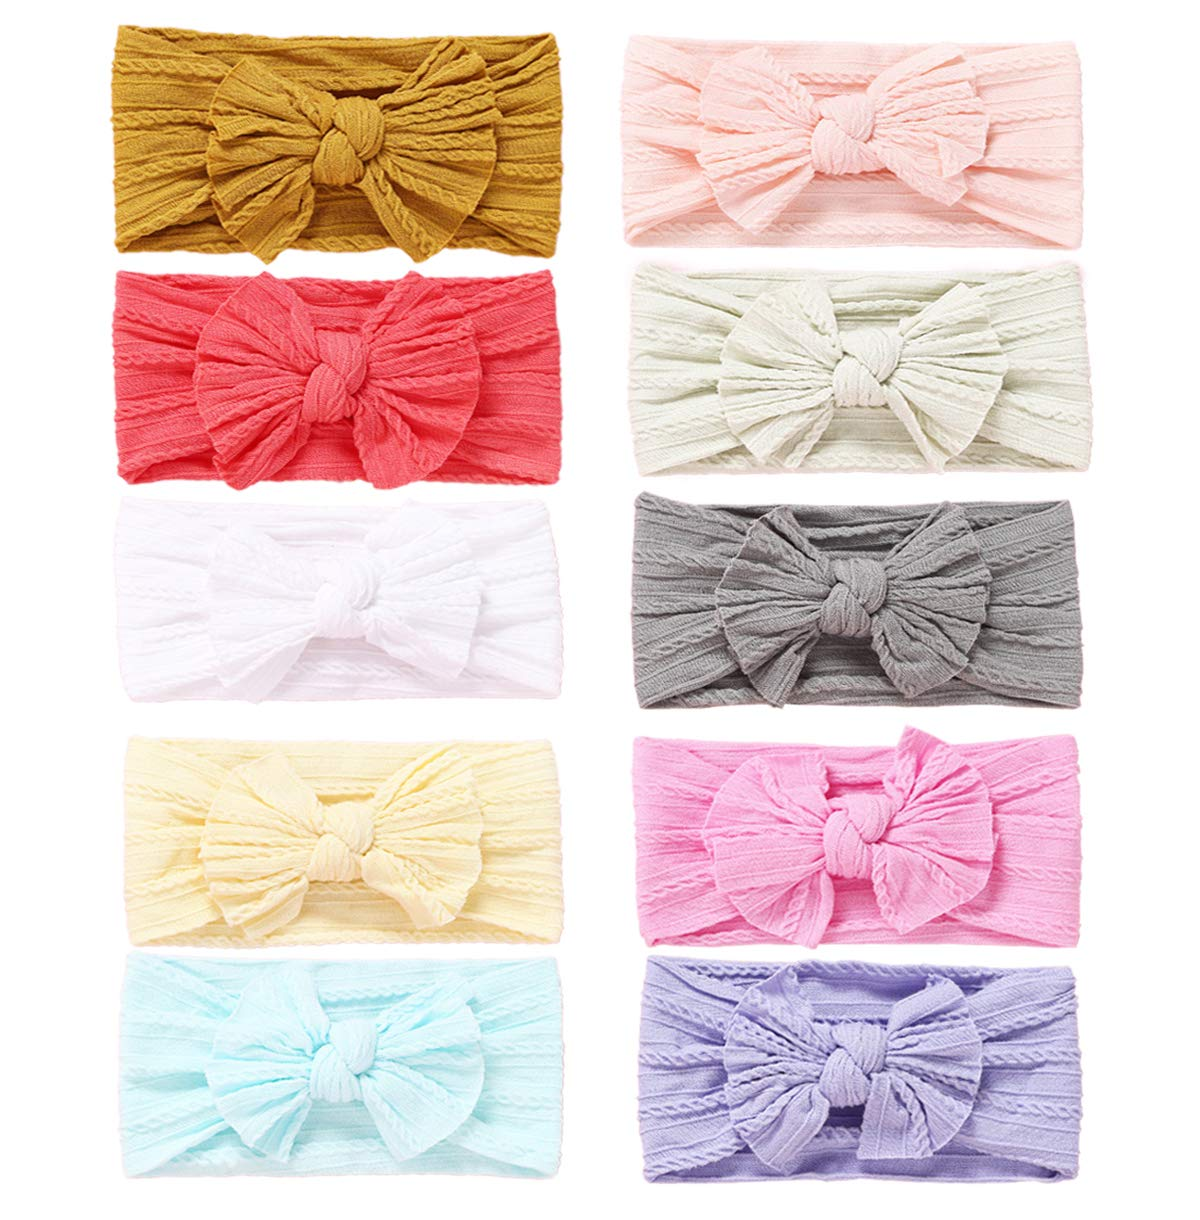 10pcs Baby Girl Nylon Headbands Newborn Infant Toddler Hairbands and Bows Child Hair Accessories (2019LXZB) by Mookiraer